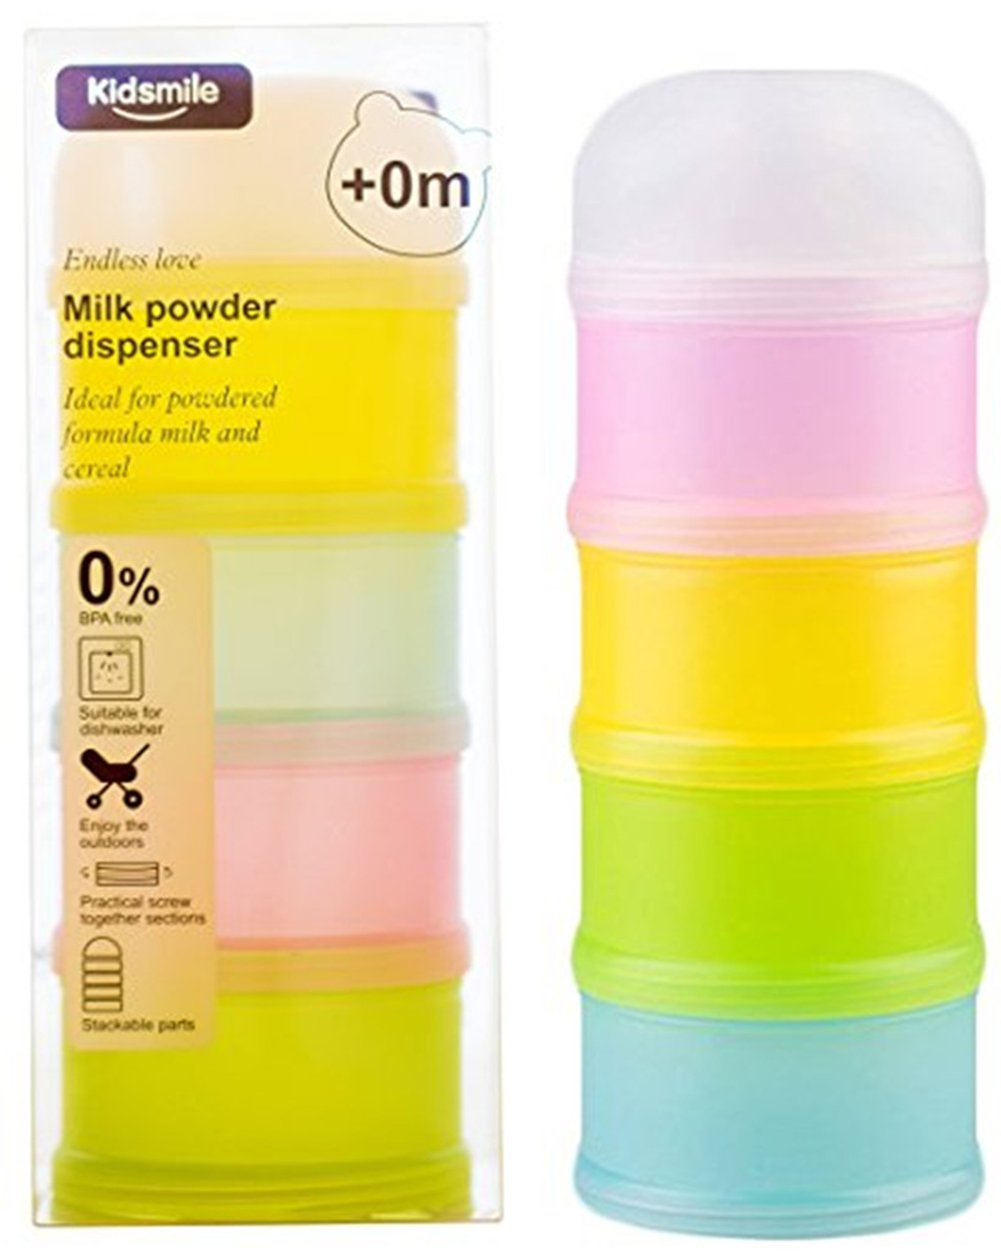 Kidsmile Non-Spill Baby Milk Powder Dispenser, On-the-Go Twist-Lock Stackable Formula Dispenser and Snack Containers, BPA Free, 4 Pack of Different Colors